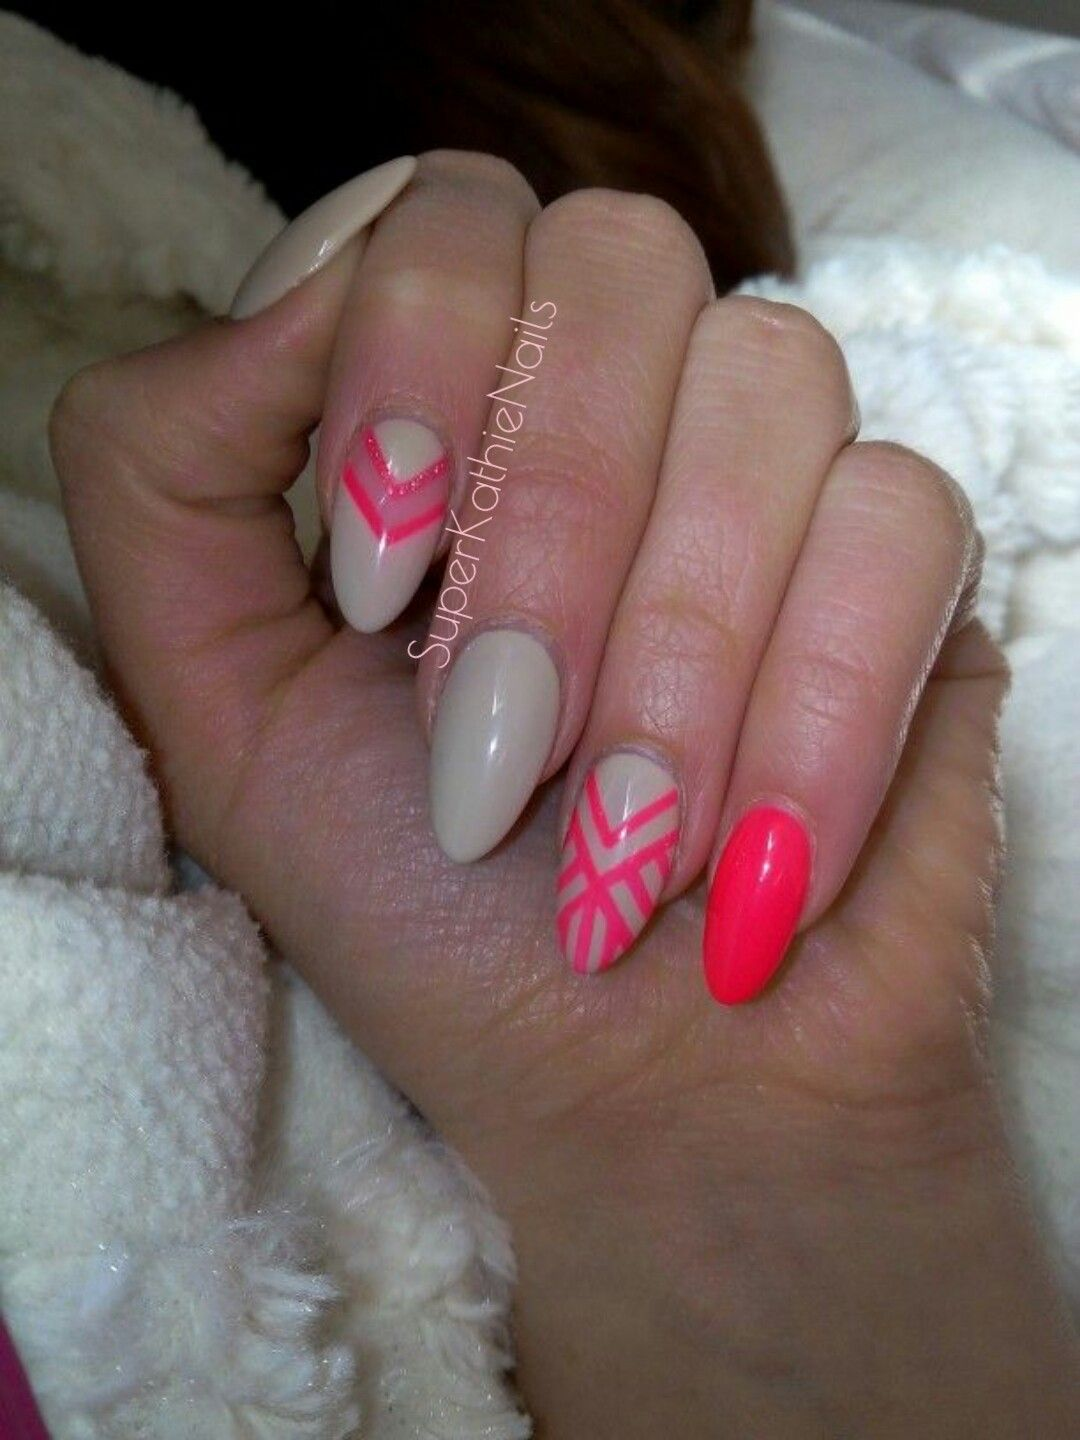 Almond Nails Neon vs. Nude | NAILS | Pinterest | Almond nails